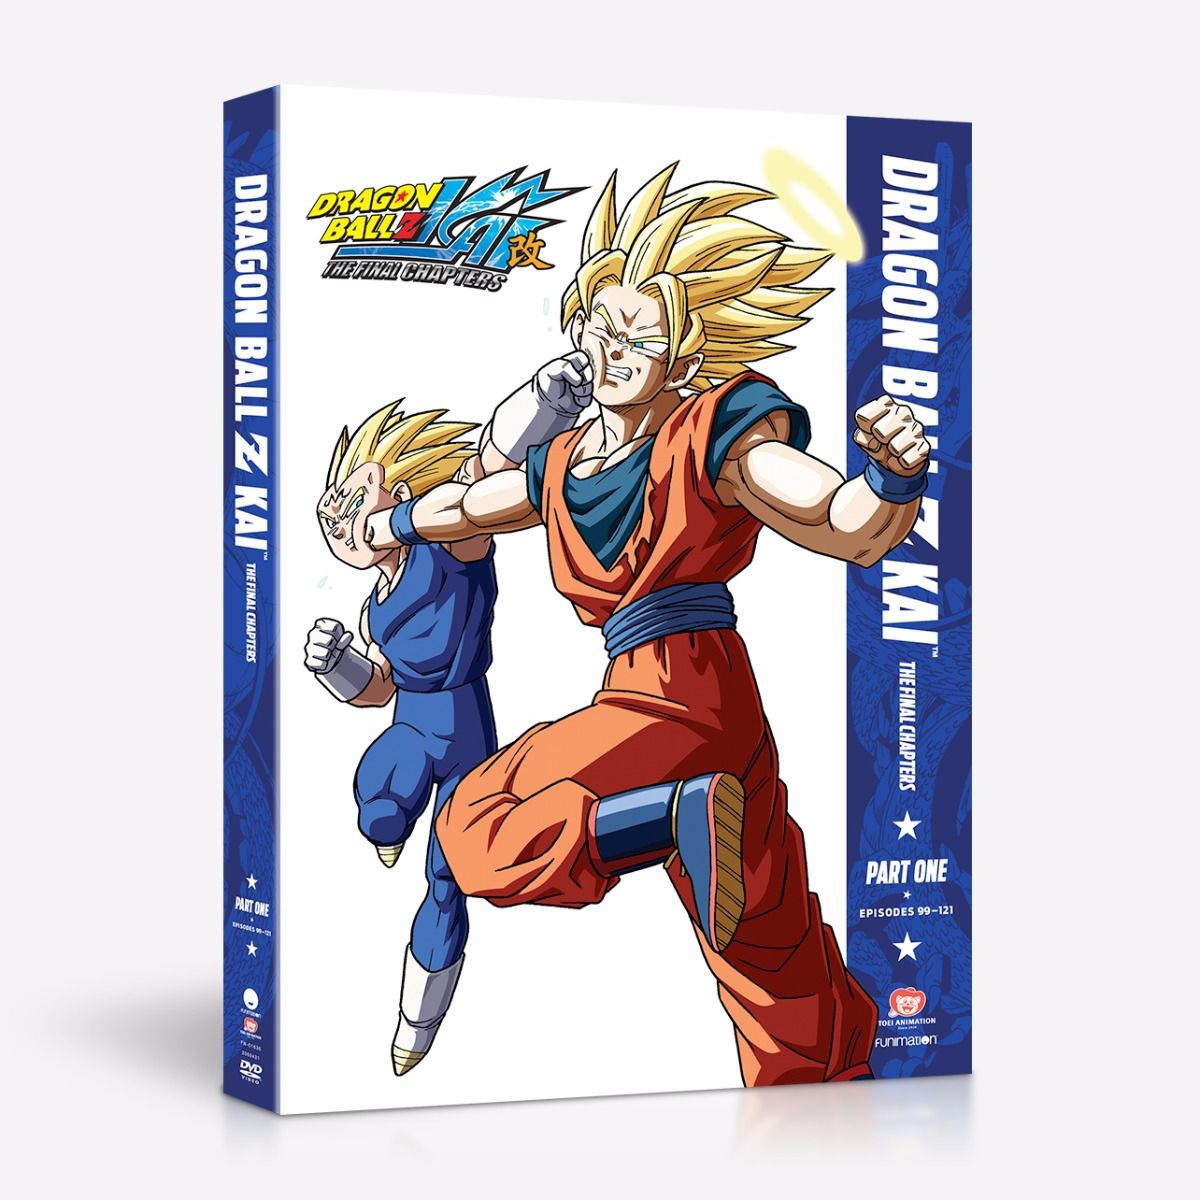 Dragon Ball Z Kai The Final Chapters Part 1 DVD